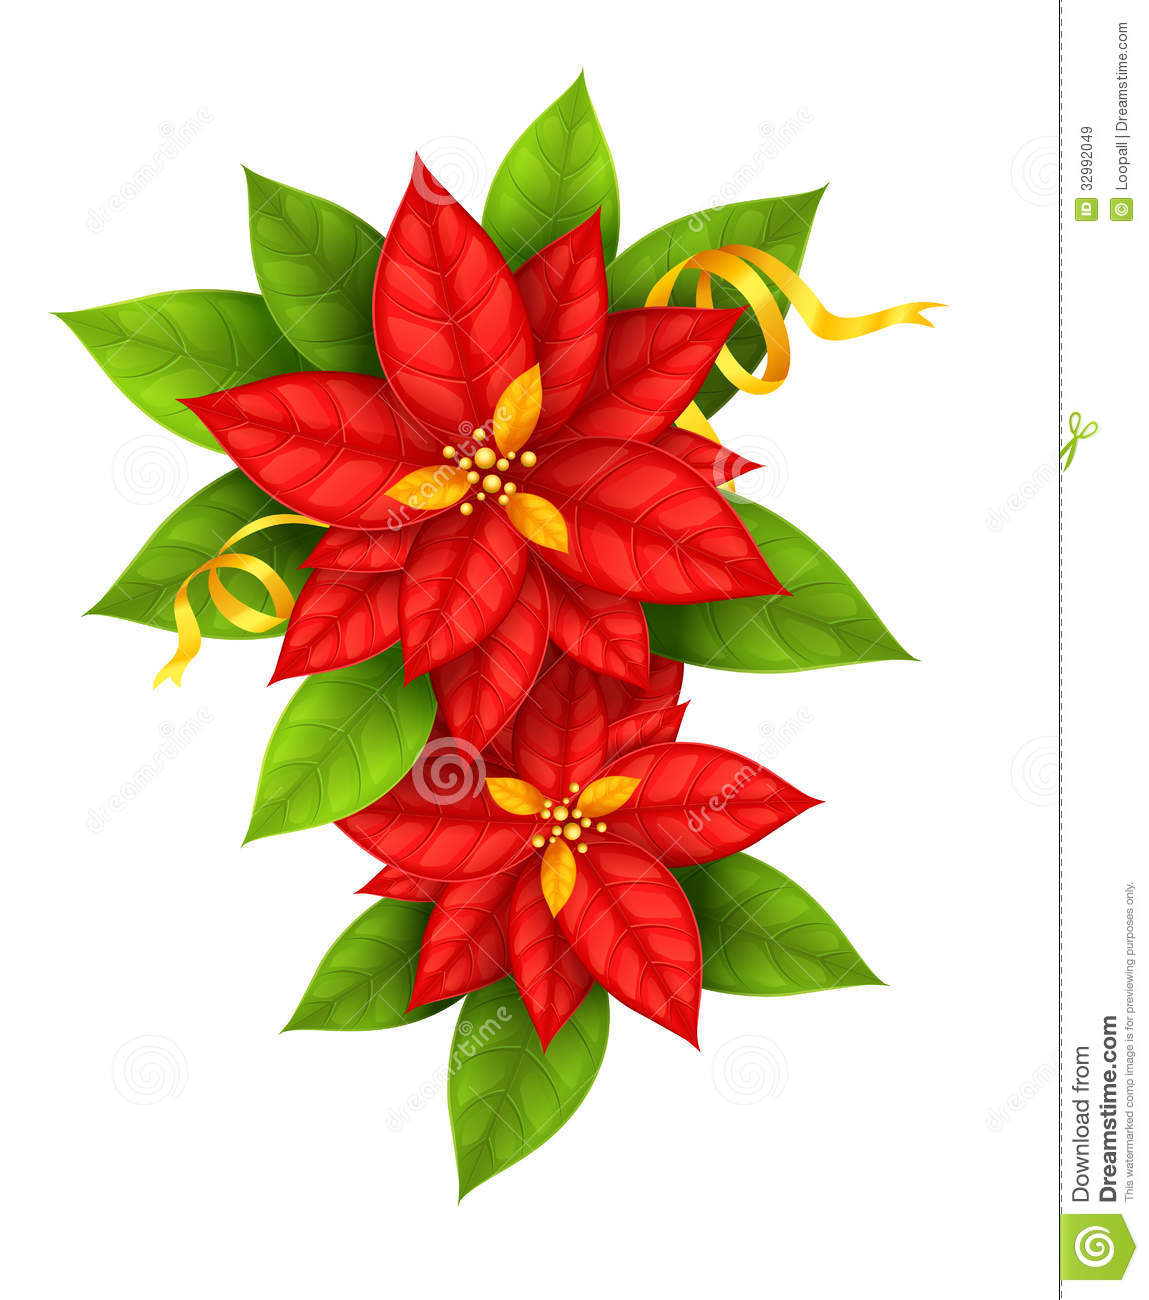 Christmas Star Flowers Poinsettia With Gold Ribbon Royalty Free Stock ...